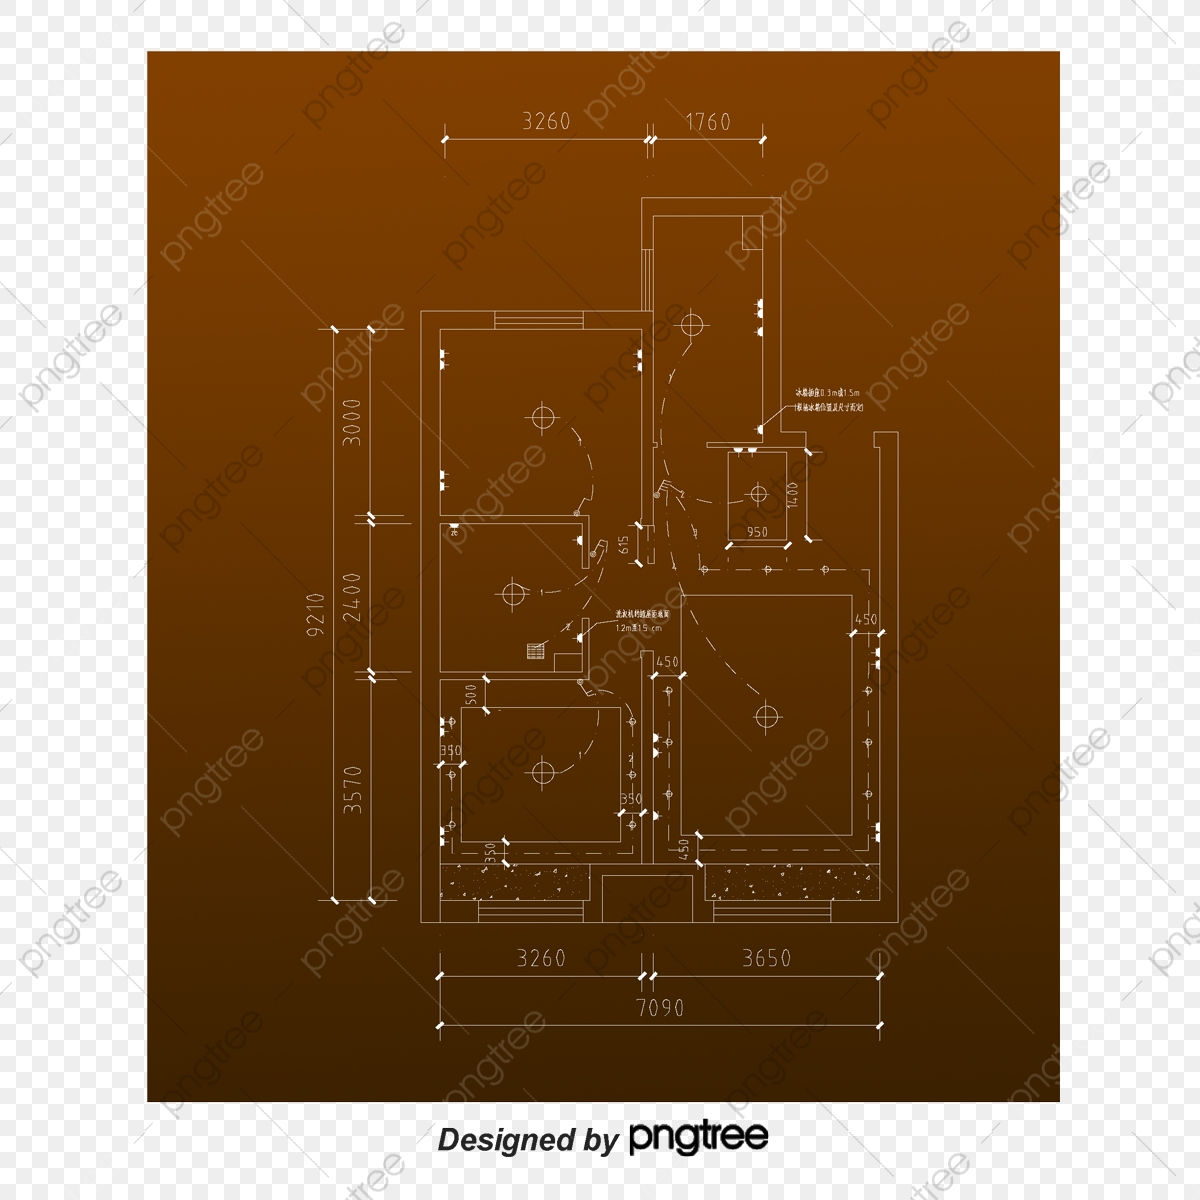 Floor Plan Png Images Vector And Psd Files Free Download On Pngtree